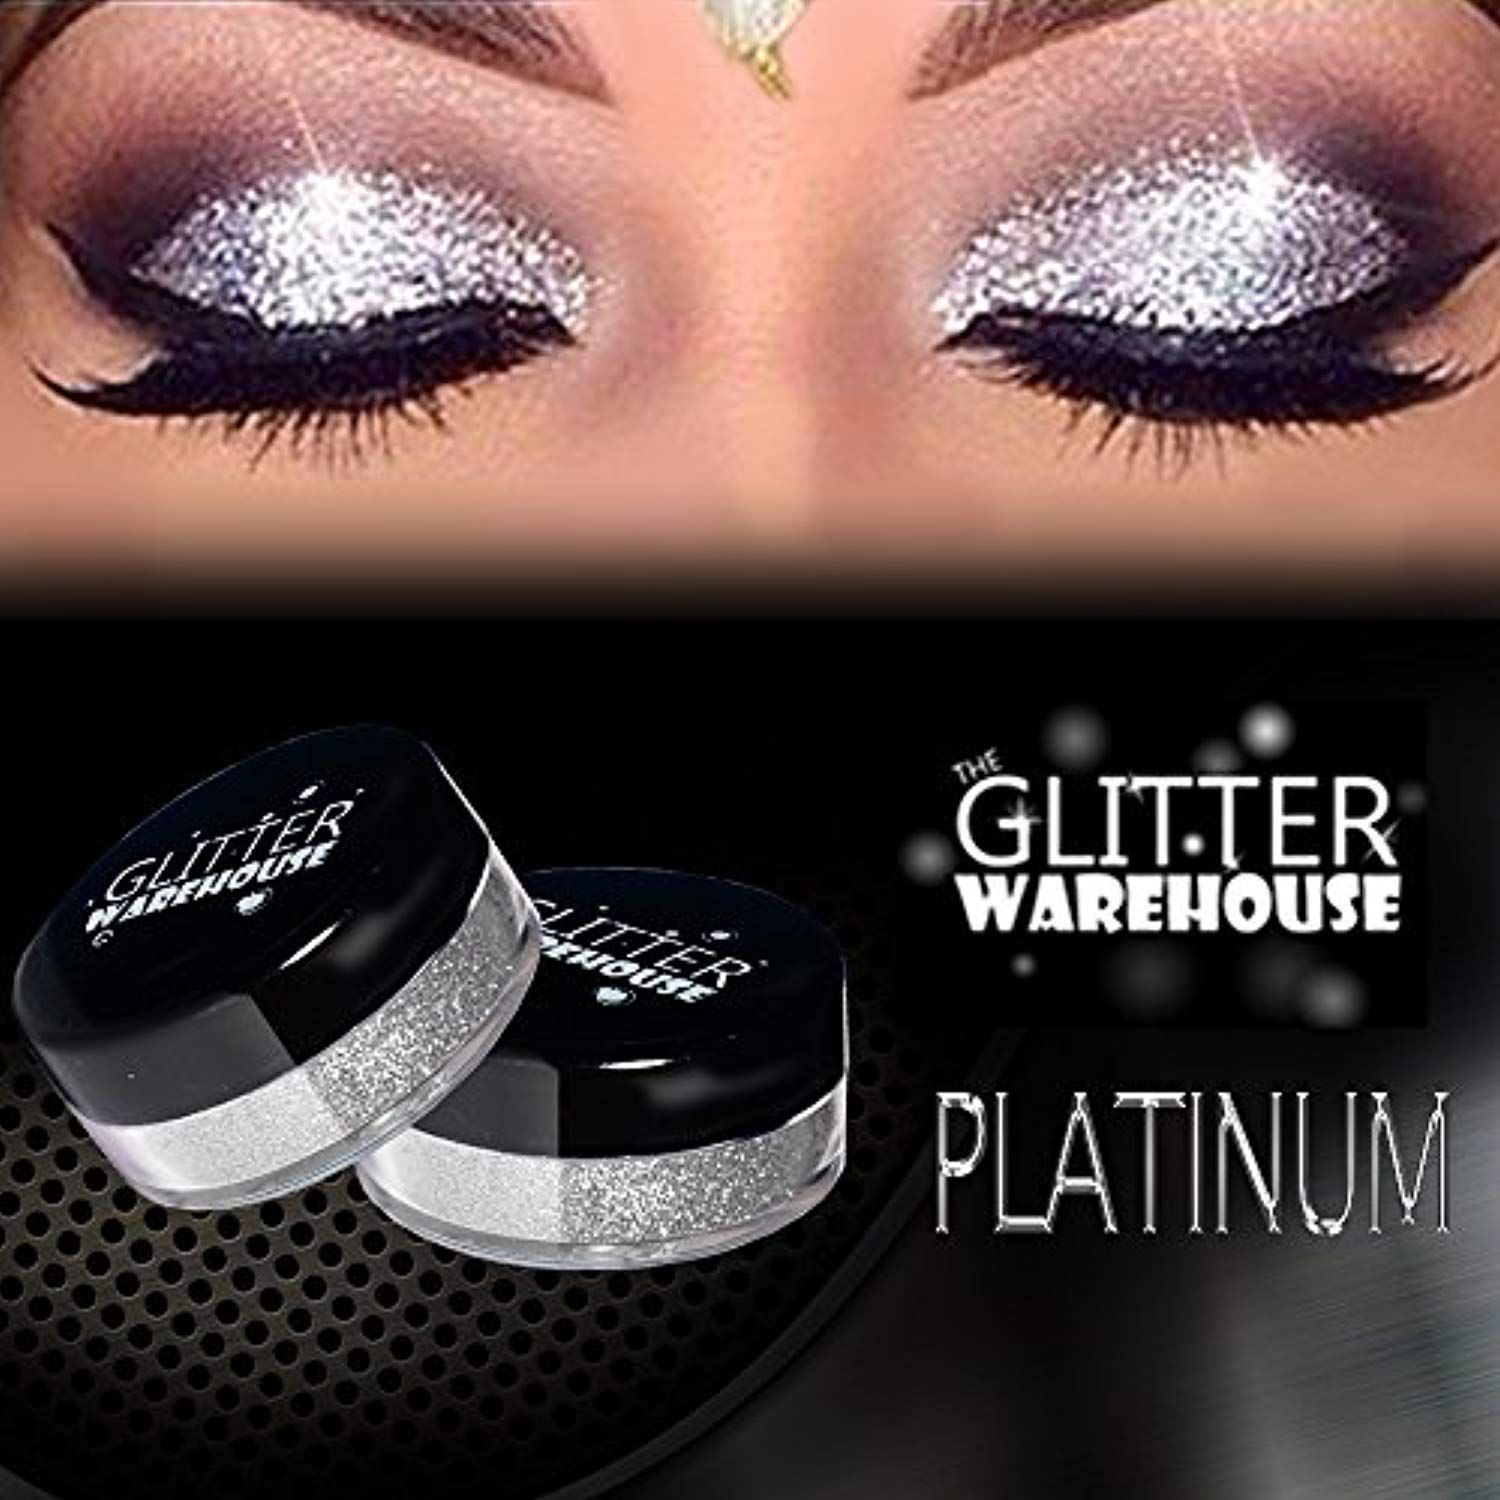 GlitterWarehouse Platinum Silver Loose Glitter Powder